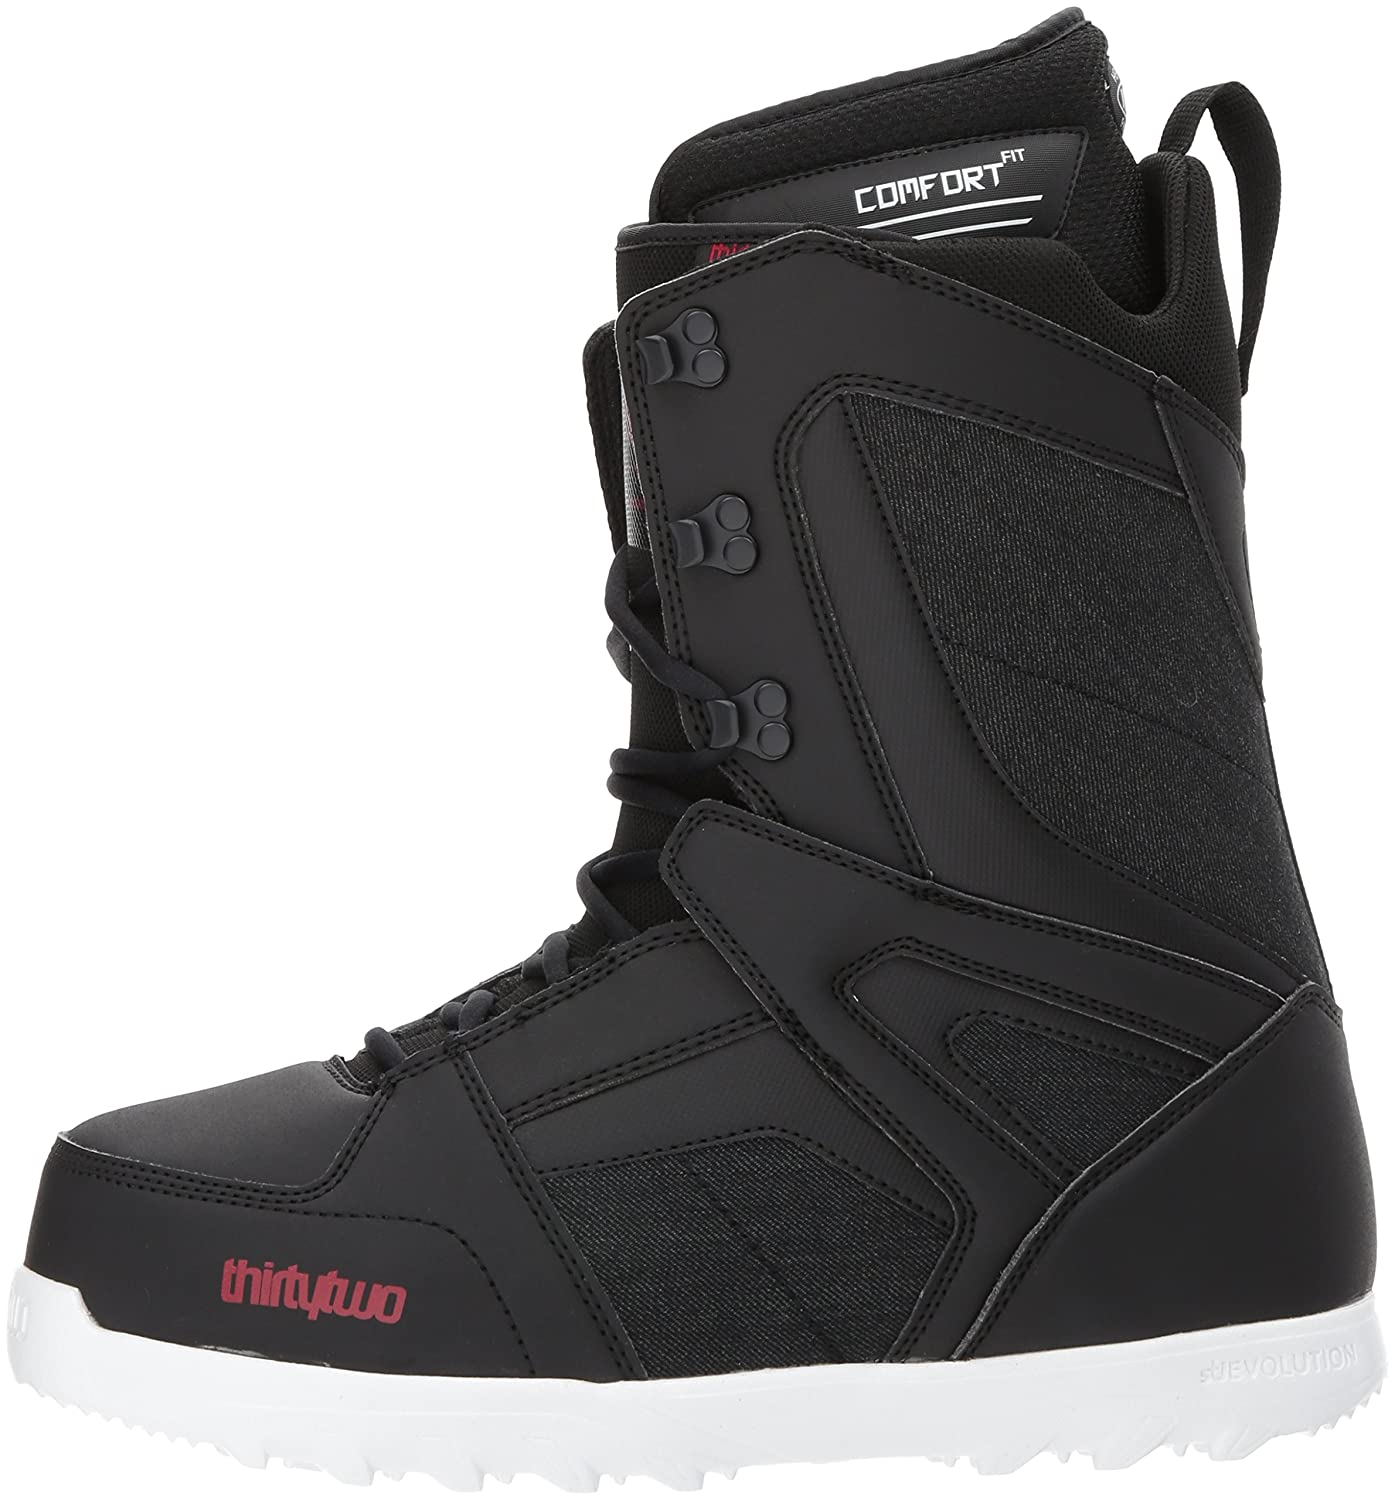 thirtytwo Prion 17 Snowboard Boot